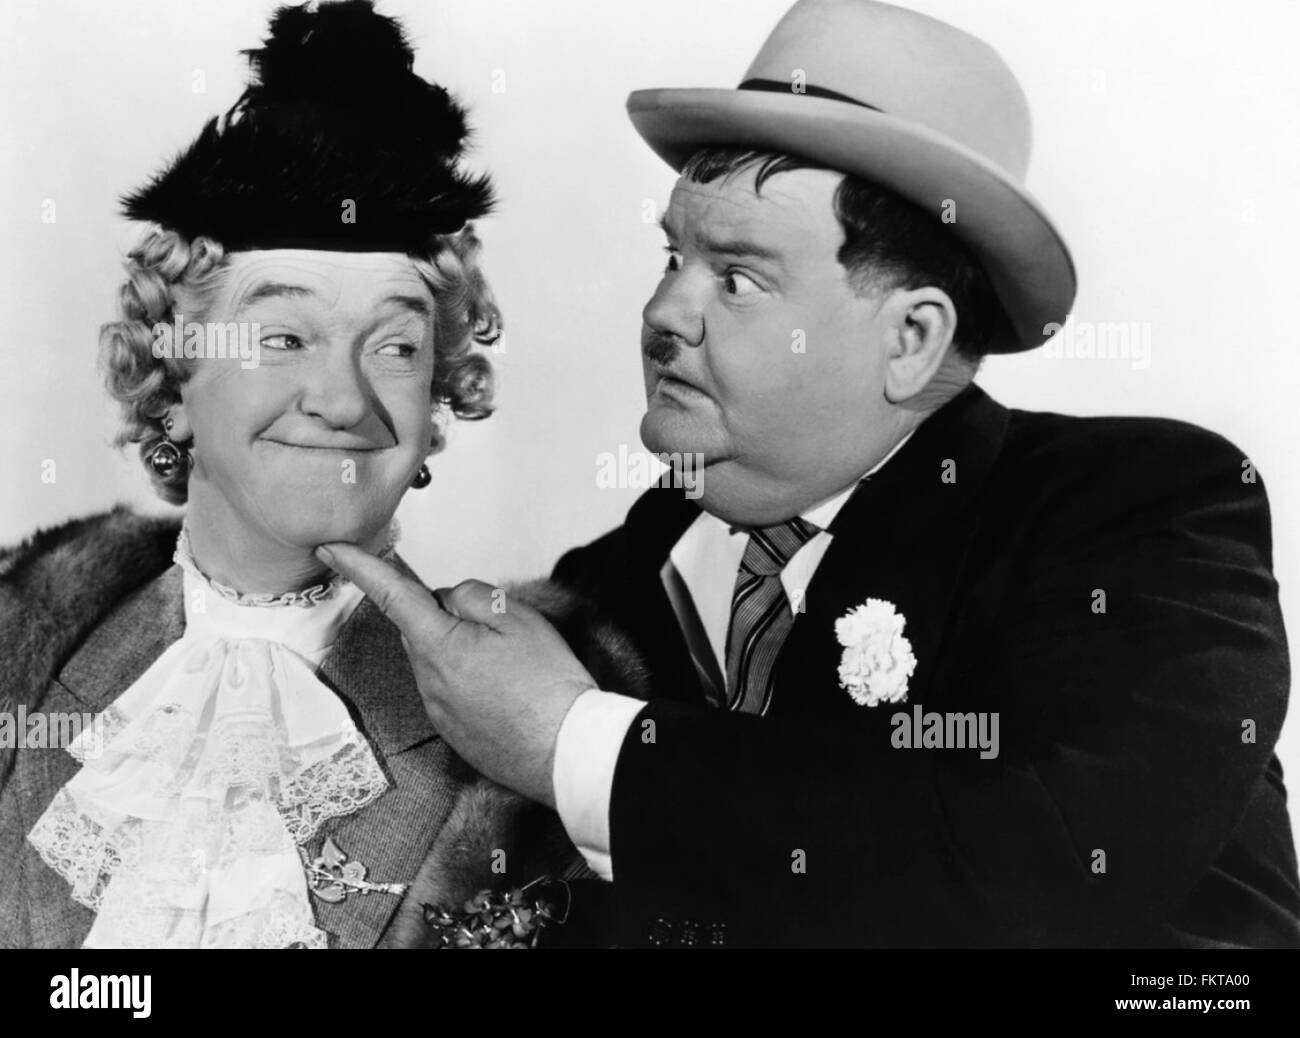 Laurel And Hardy Black and White Stock Photos & Images - Alamy